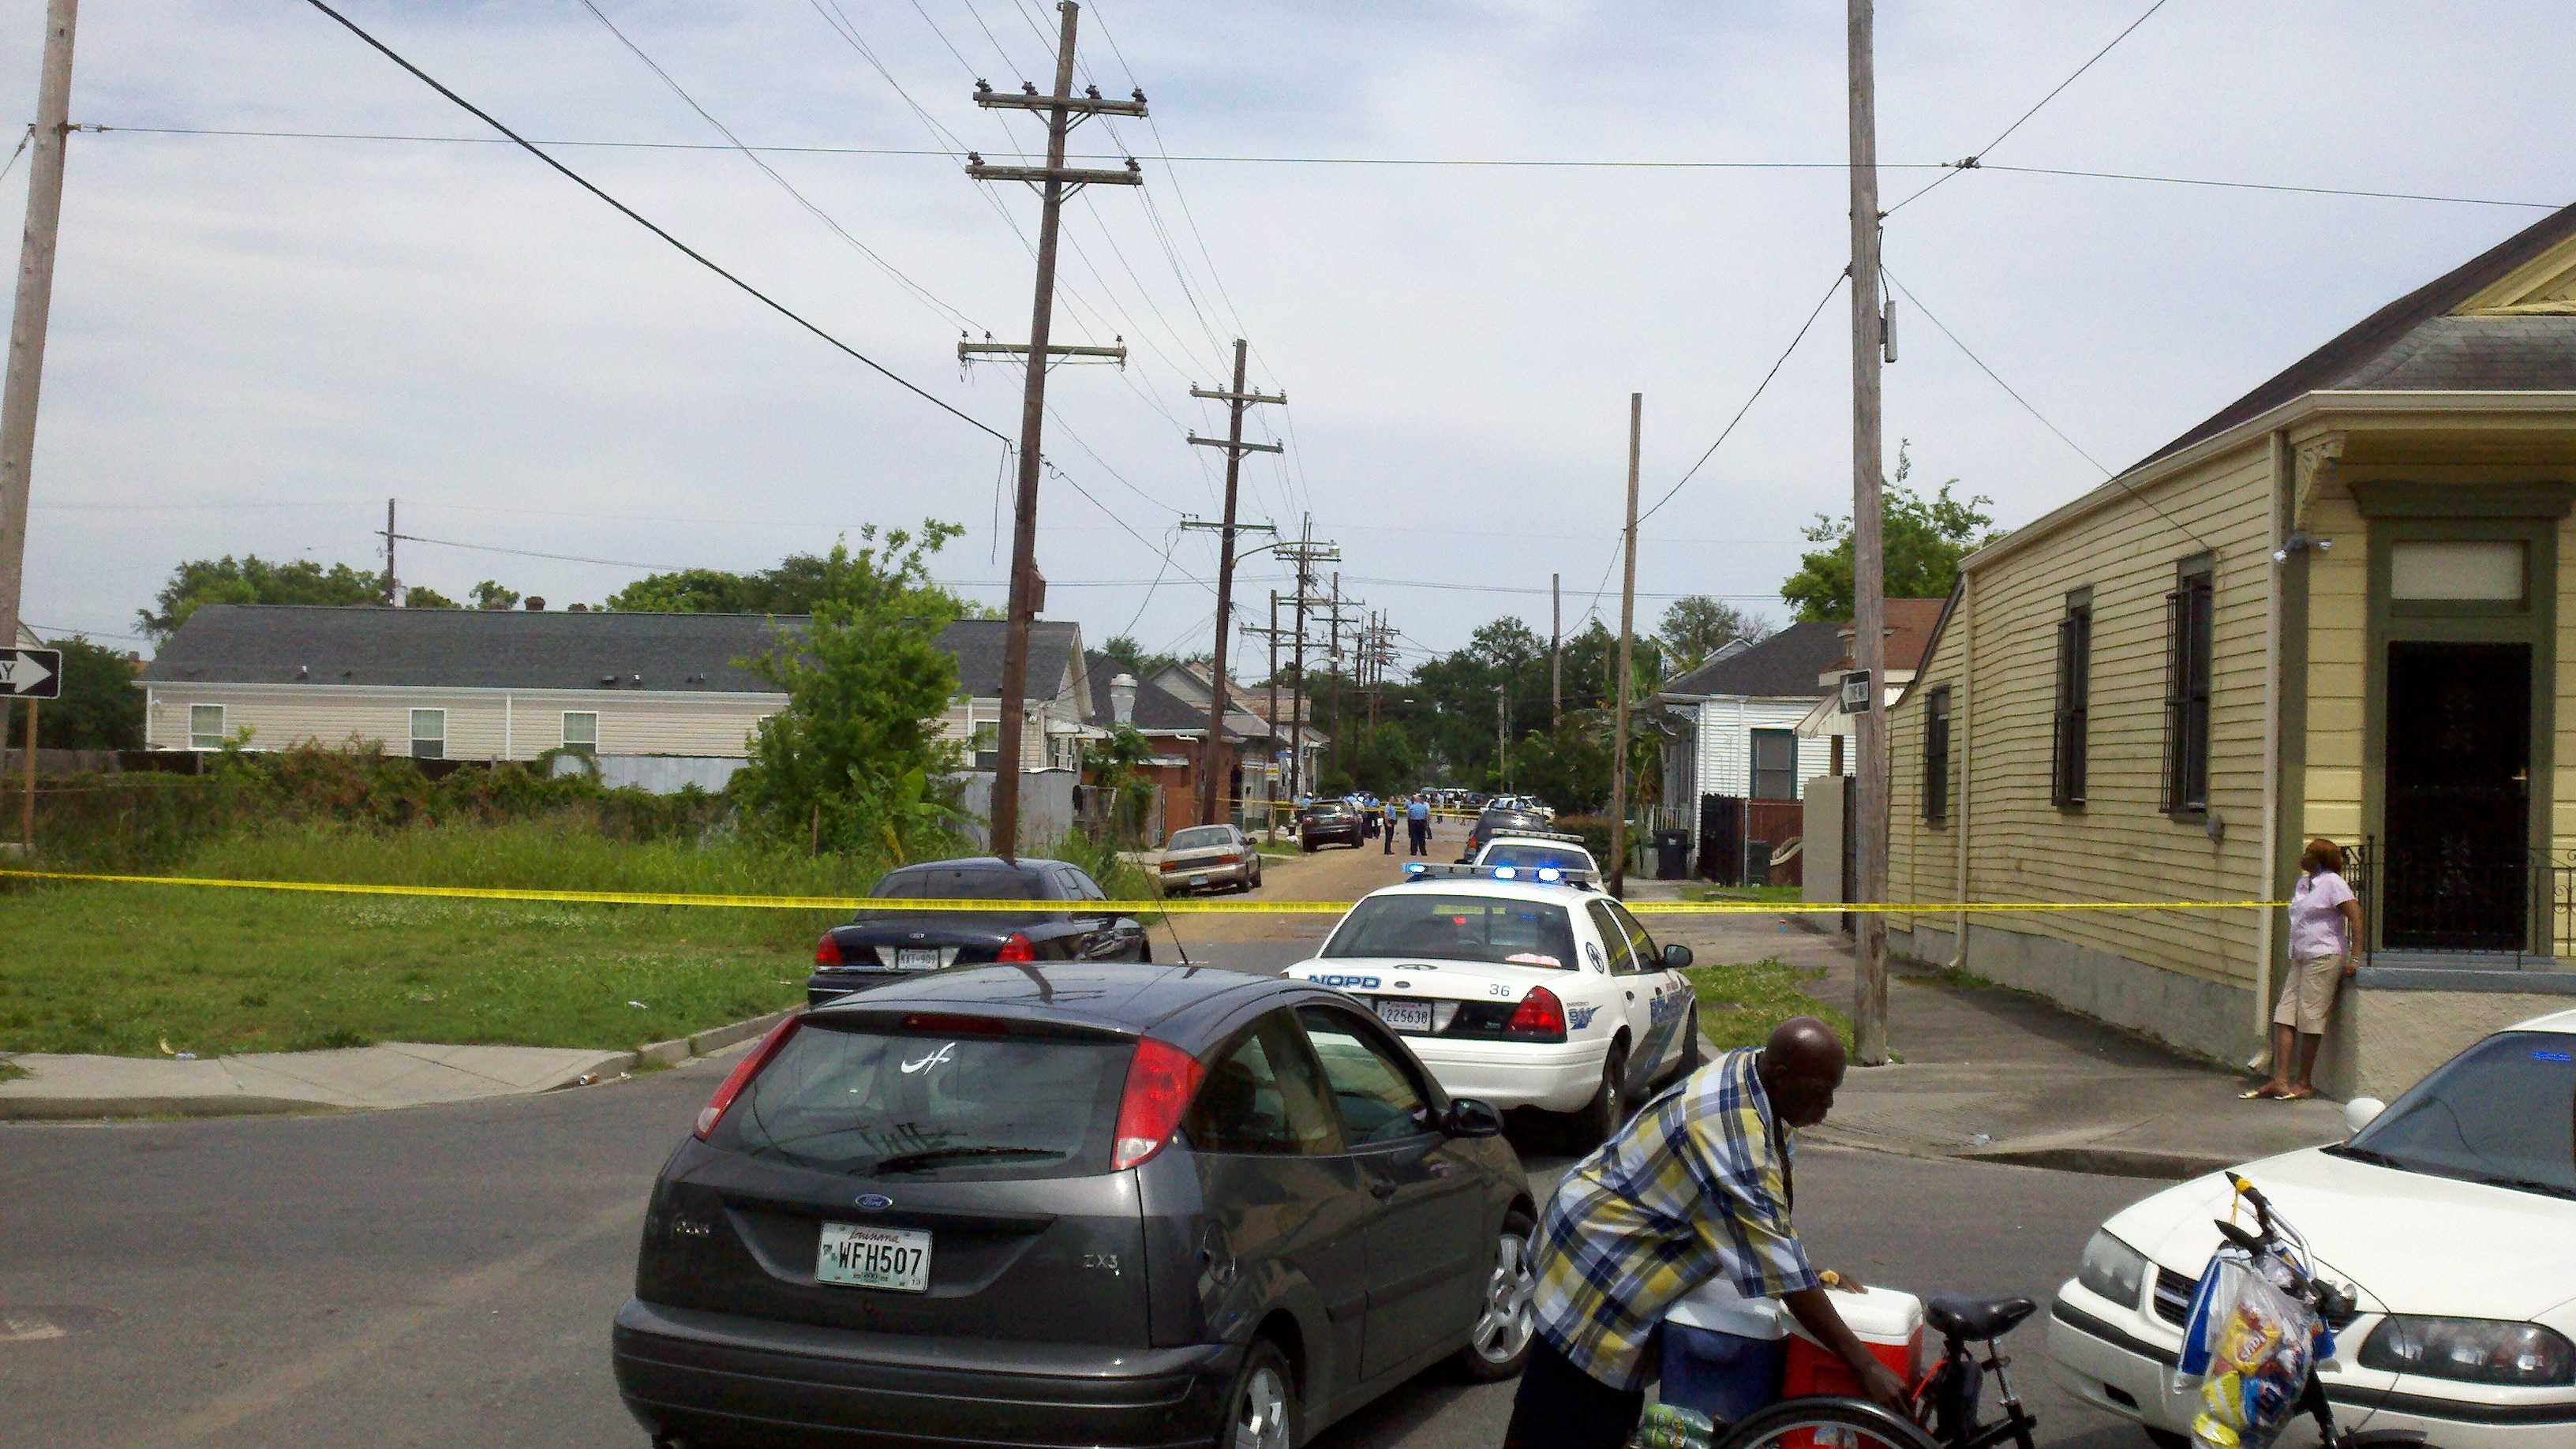 Frenchmen Villere streets shooting